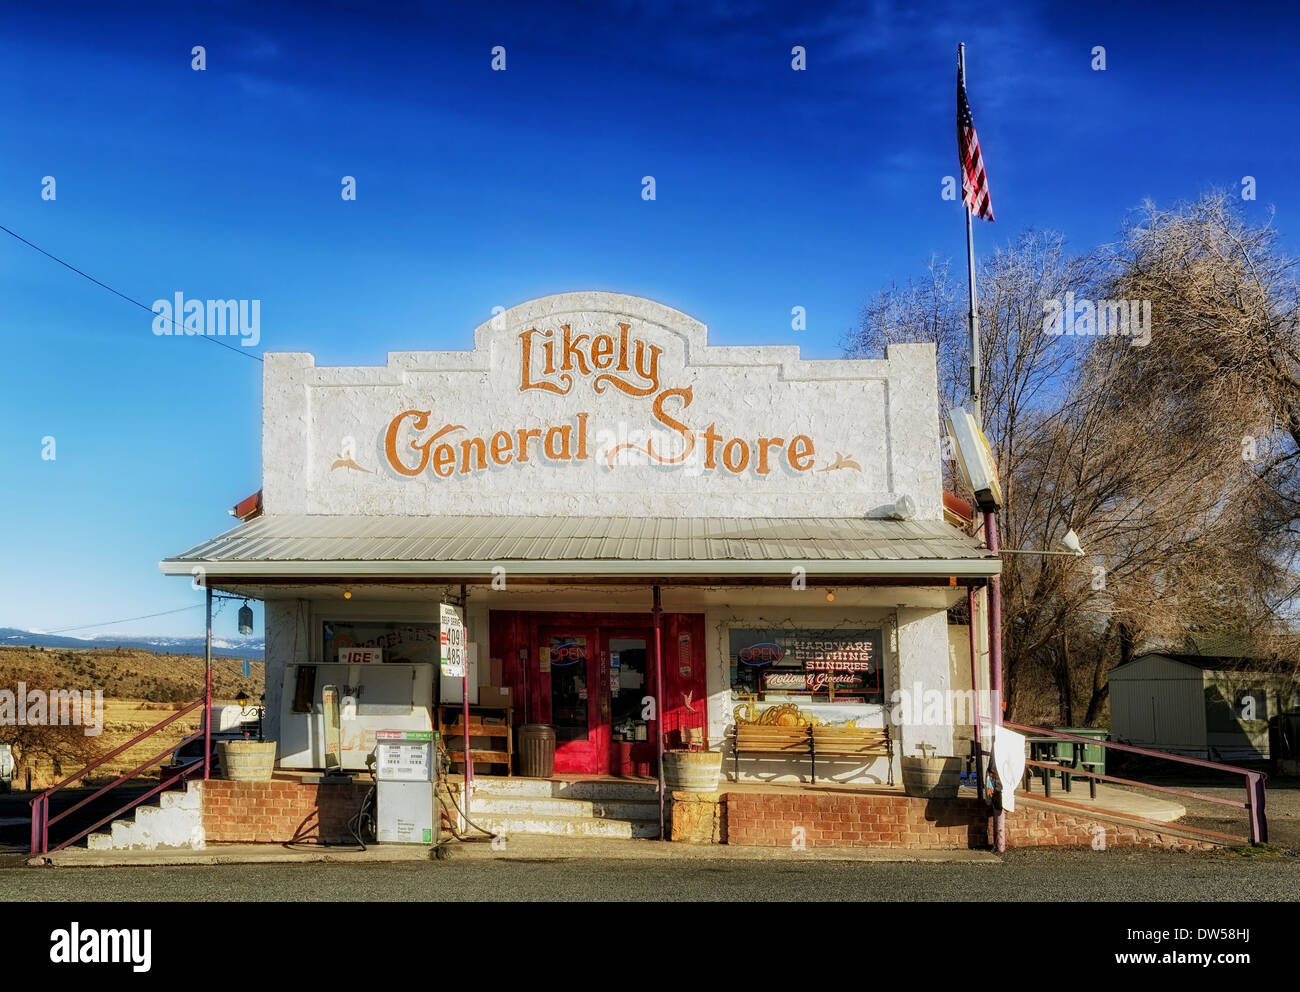 general store california nostalgic old-fashioned - Stock Image